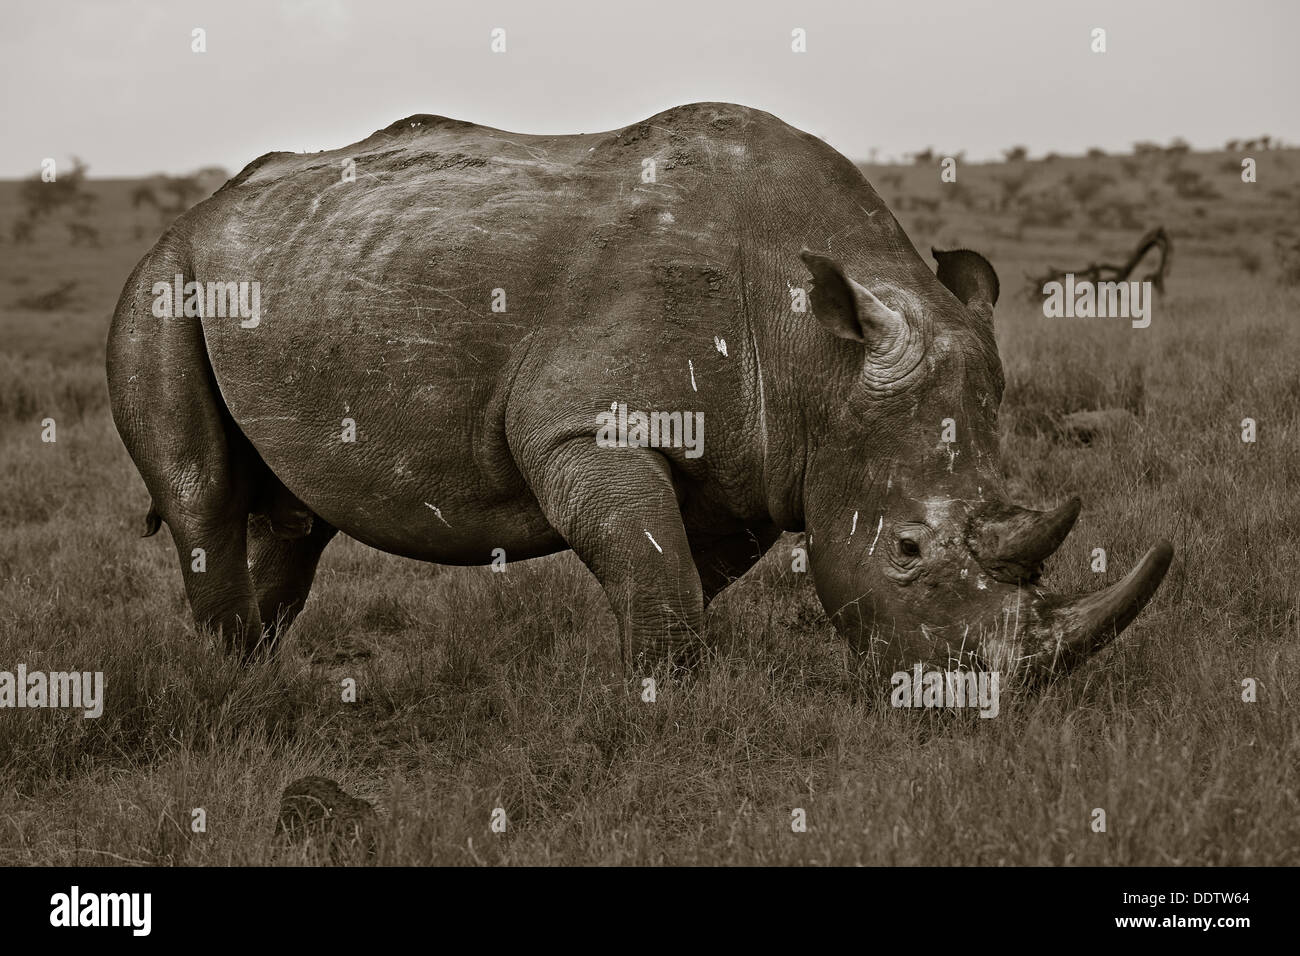 activity, African, action, Lewa Downs, Kenya, Africa - Stock Image